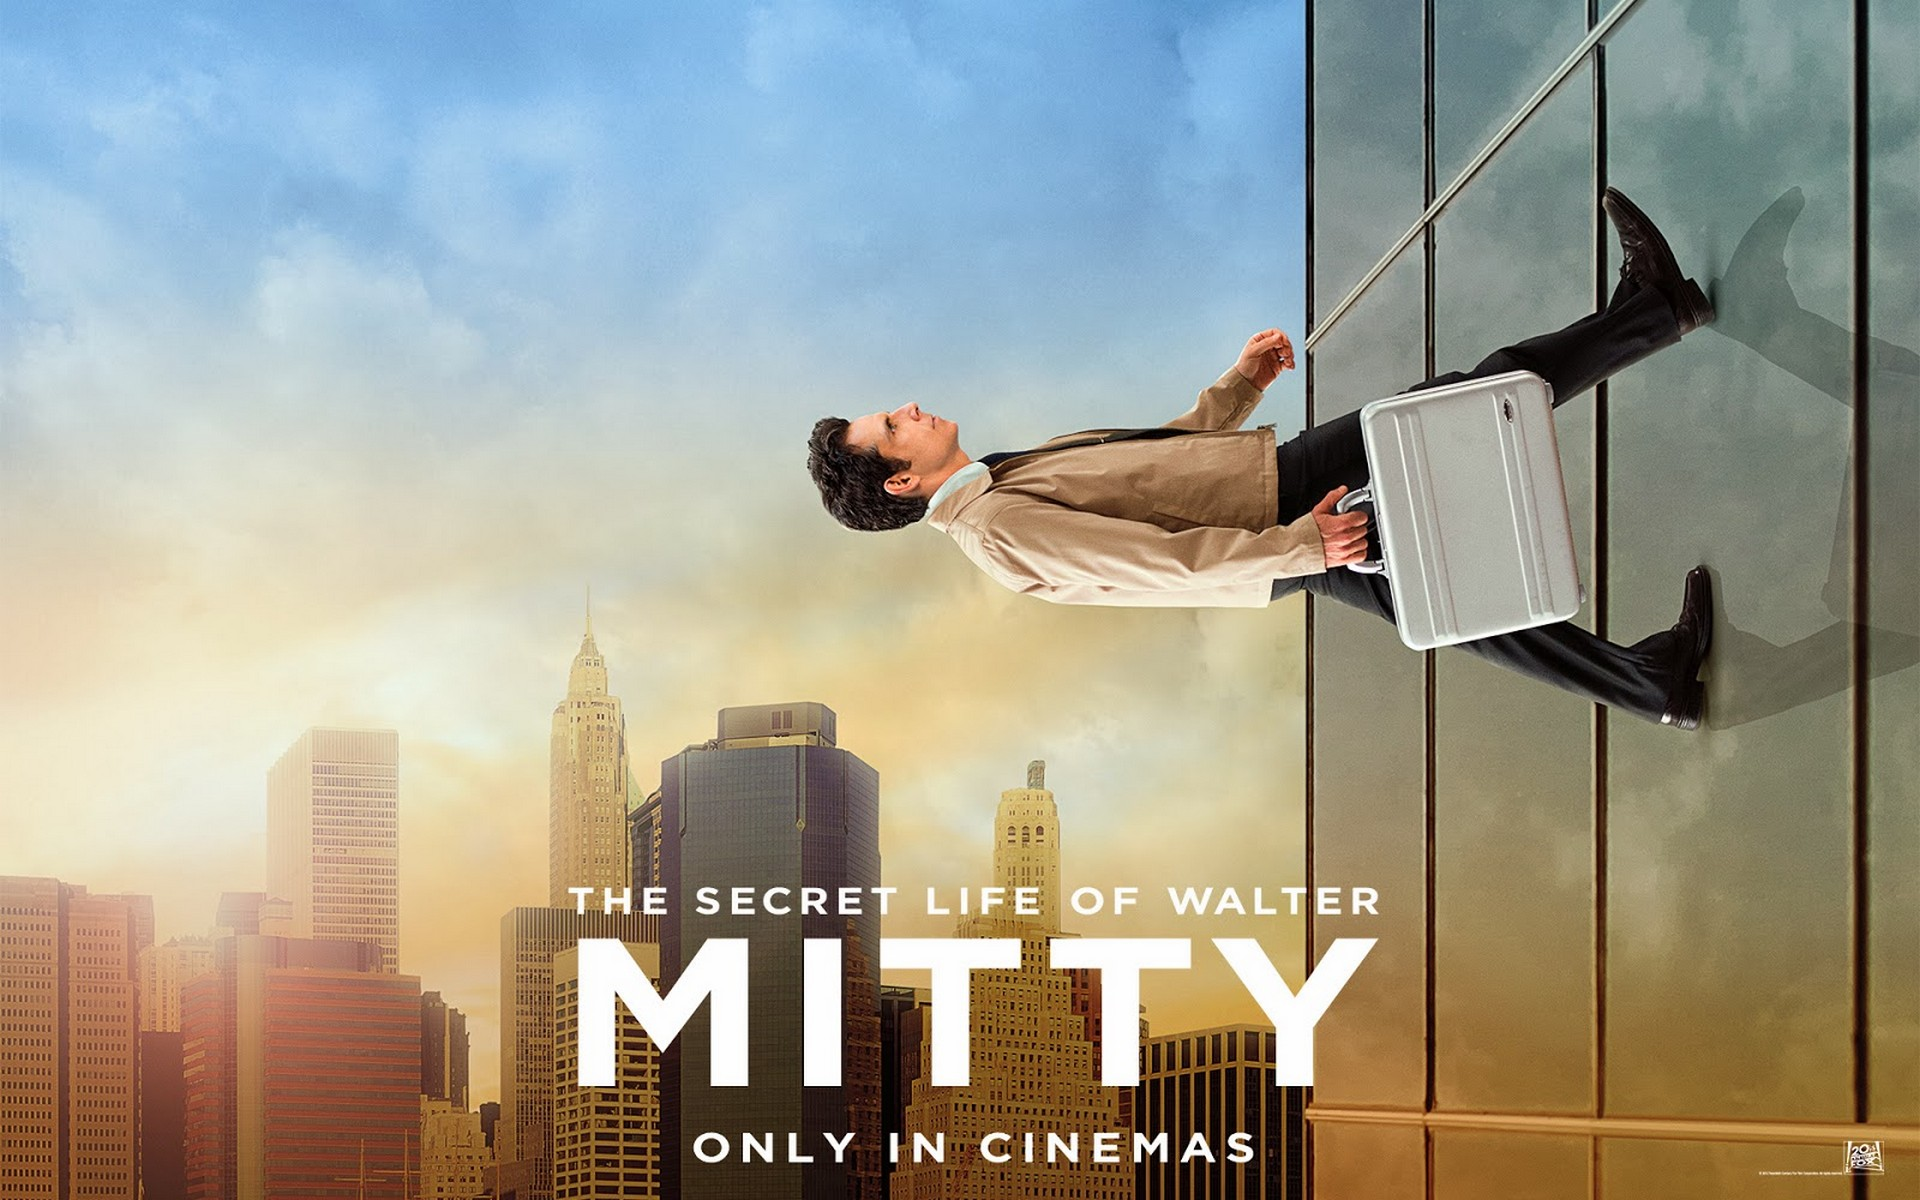 The Secret Life Of Walter Mitty Quotes 2013. QuotesGram